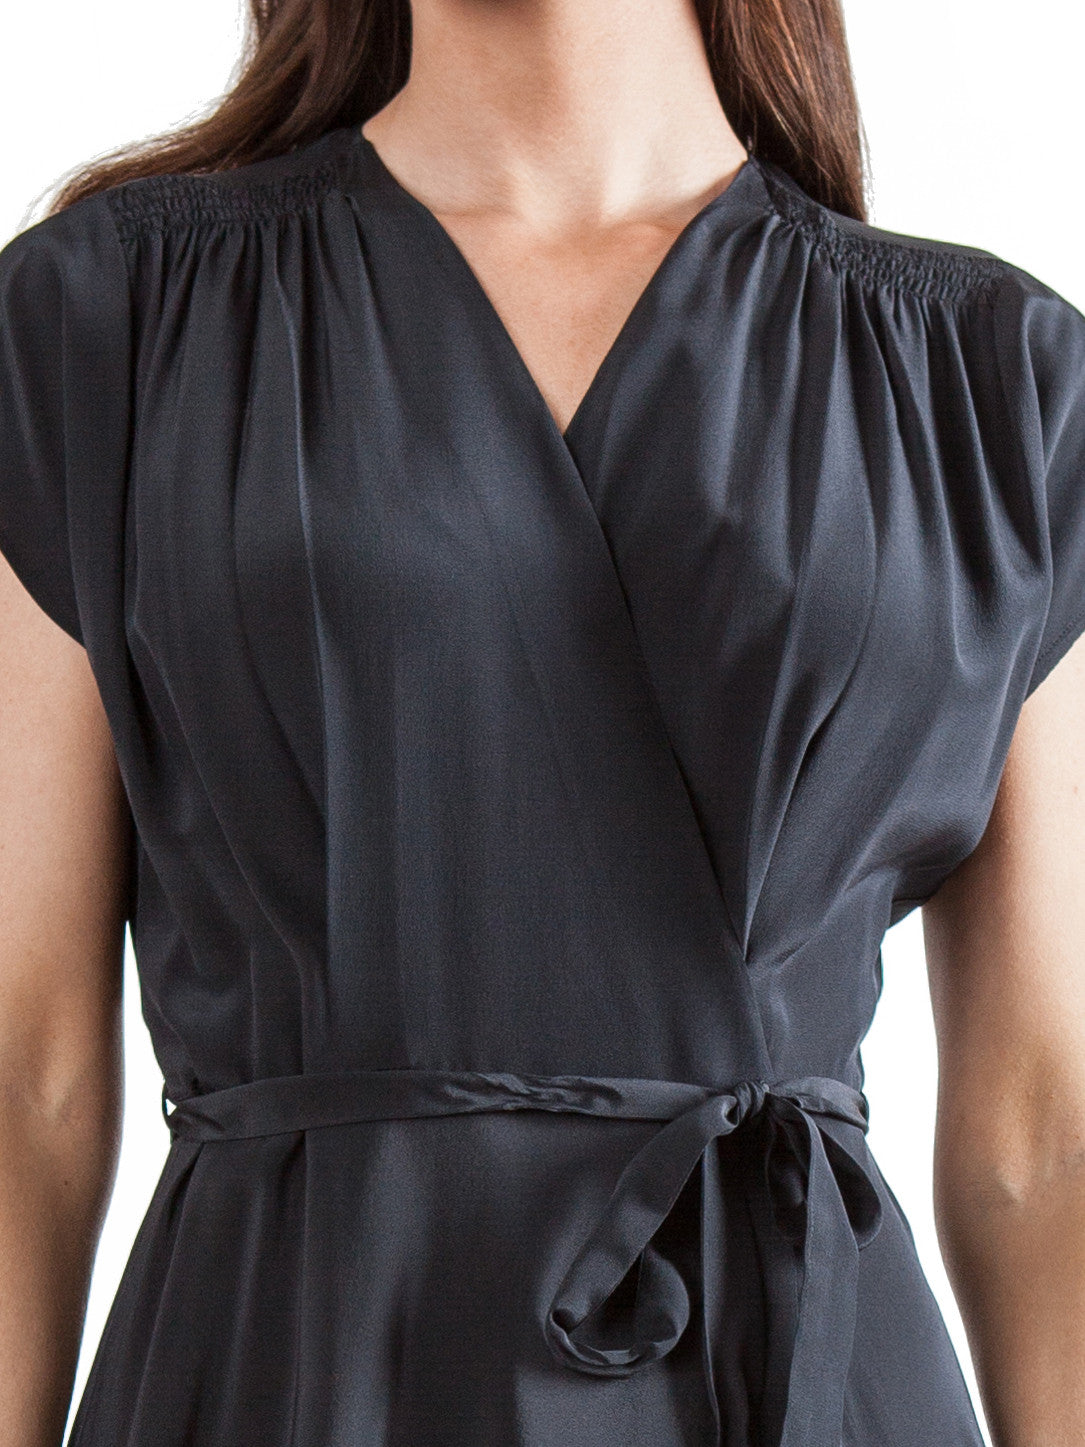 <b>Black wrap long dress</b><br><i>Silk Crepe de Chine</i>